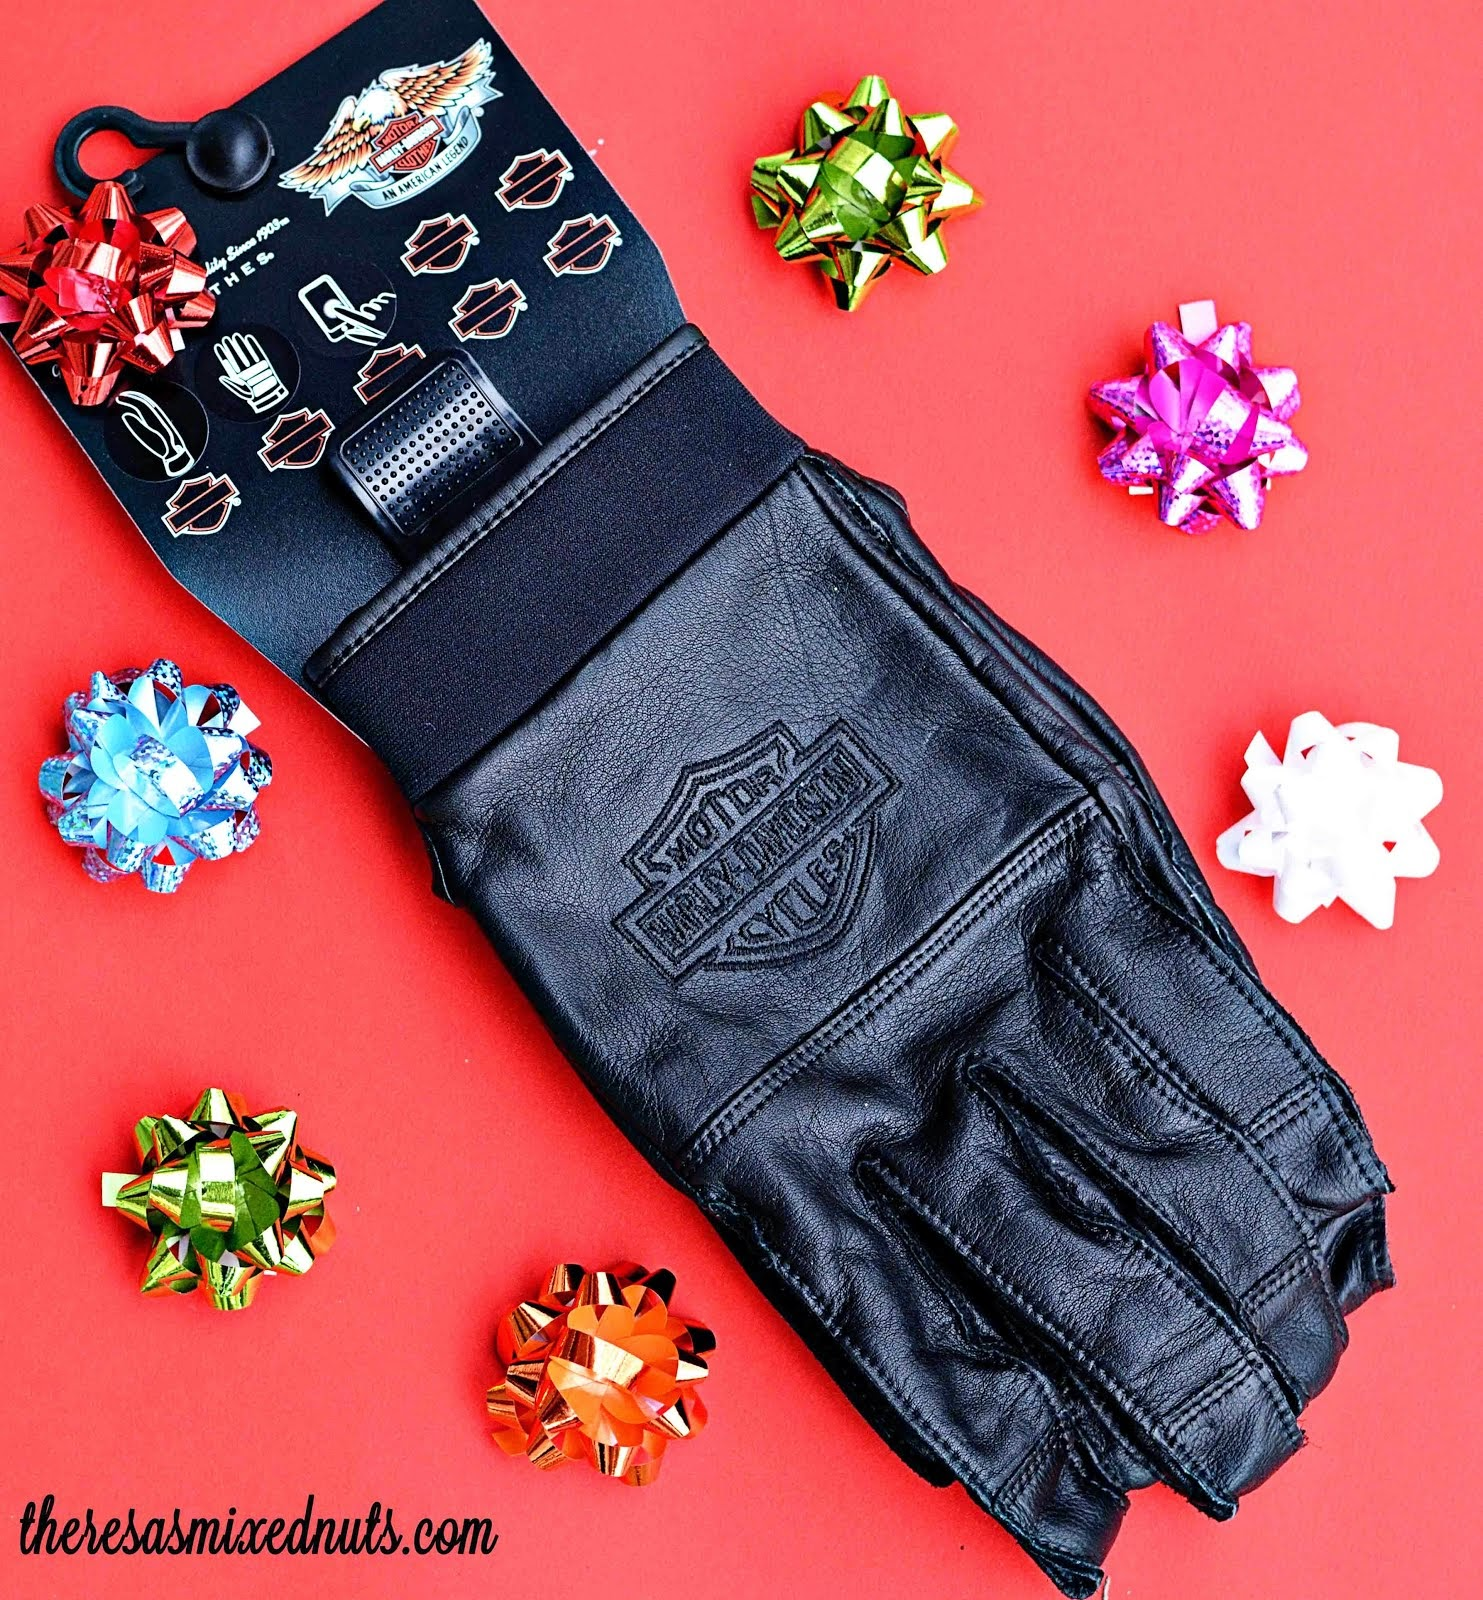 Enter To Win Harley-Davidson Men's Gloves